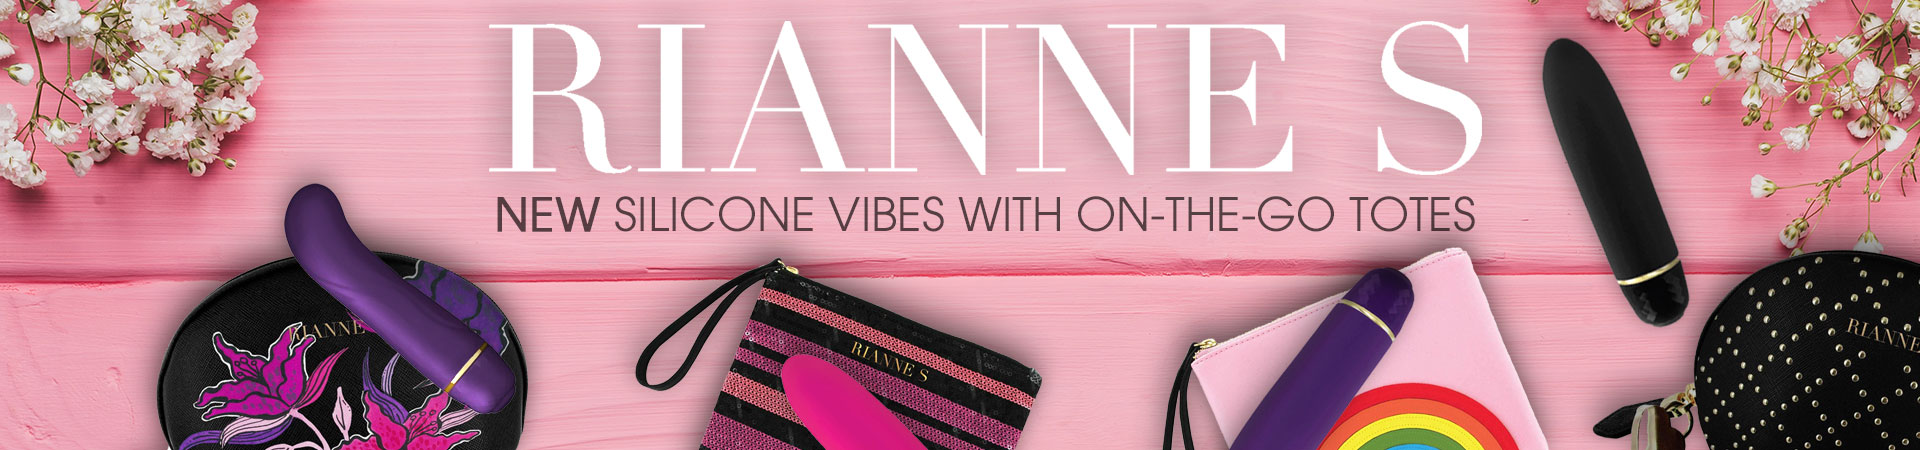 Rianne S - New Silicone Vibes With On-The-Go Totes